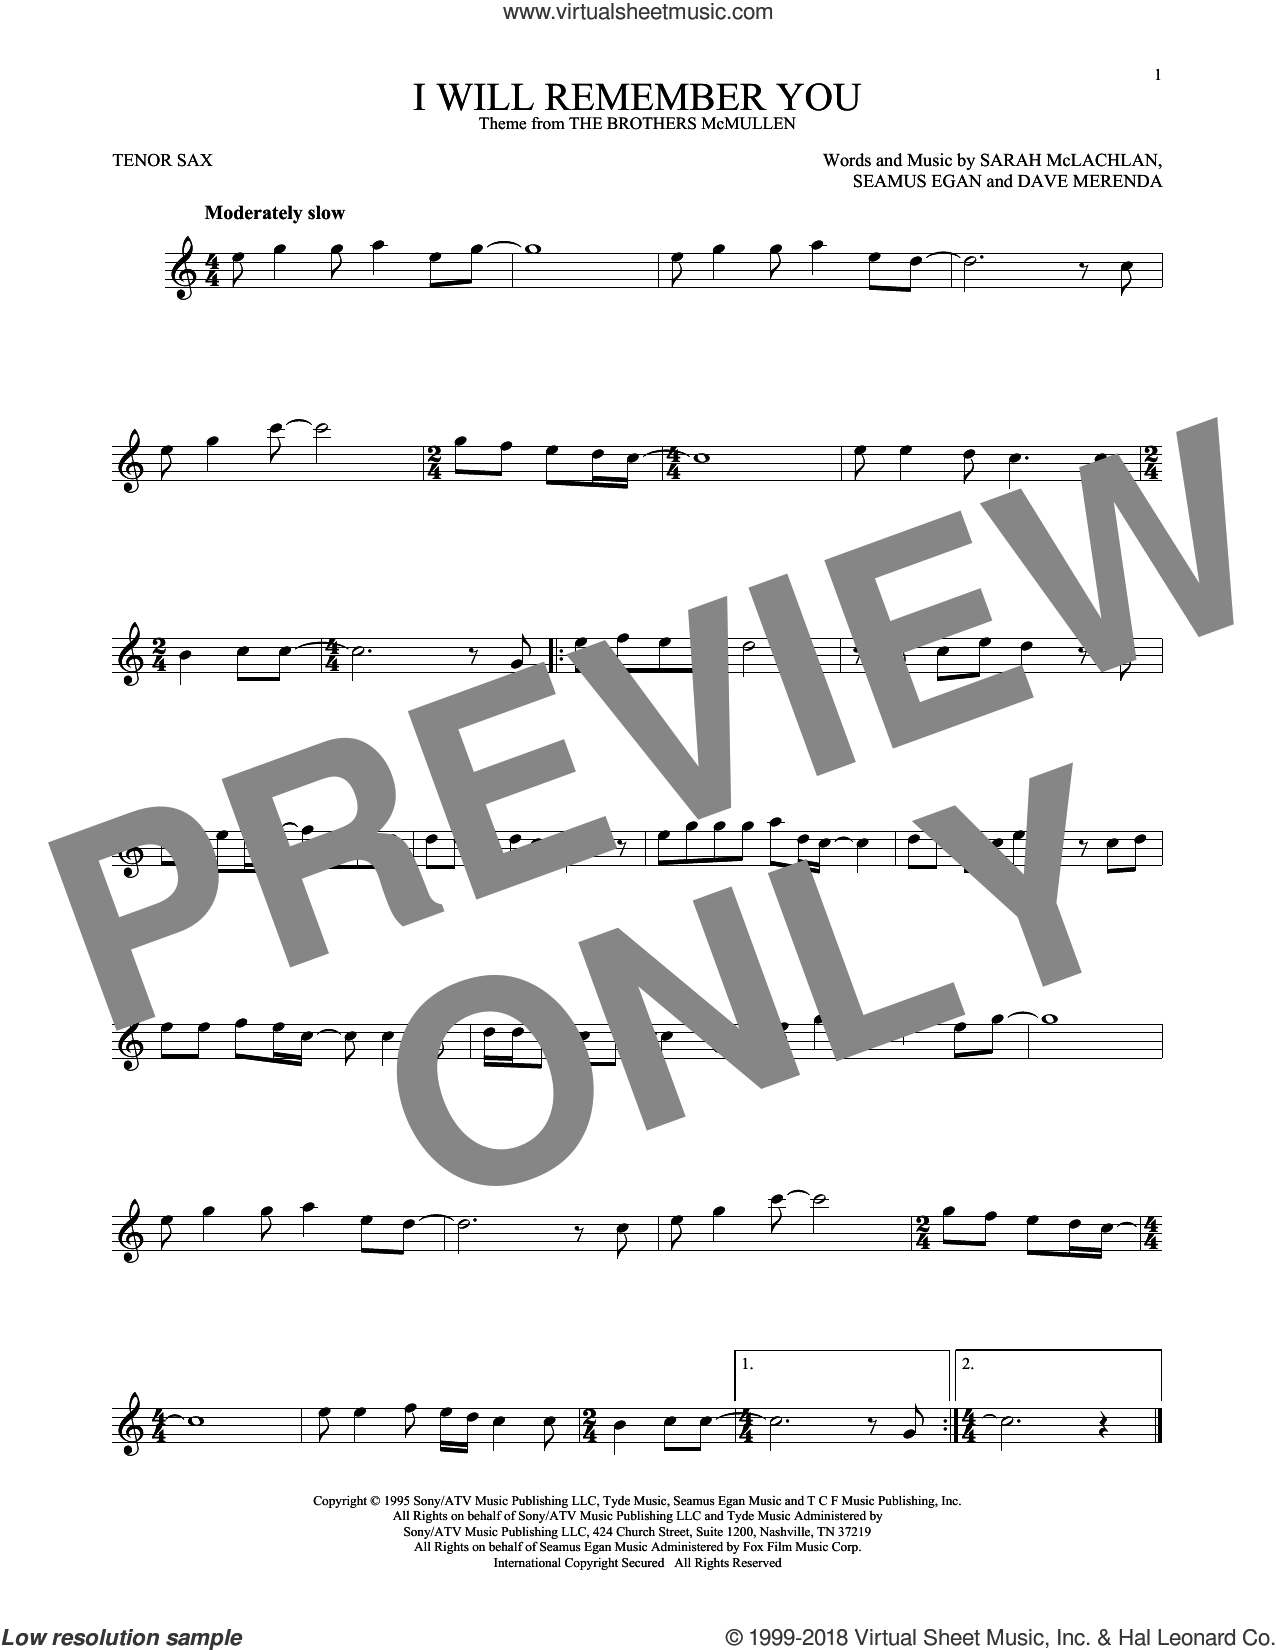 I Will Remember You sheet music for tenor saxophone solo by Sarah McLachlan, Dave Merenda and Seamus Egan, intermediate skill level